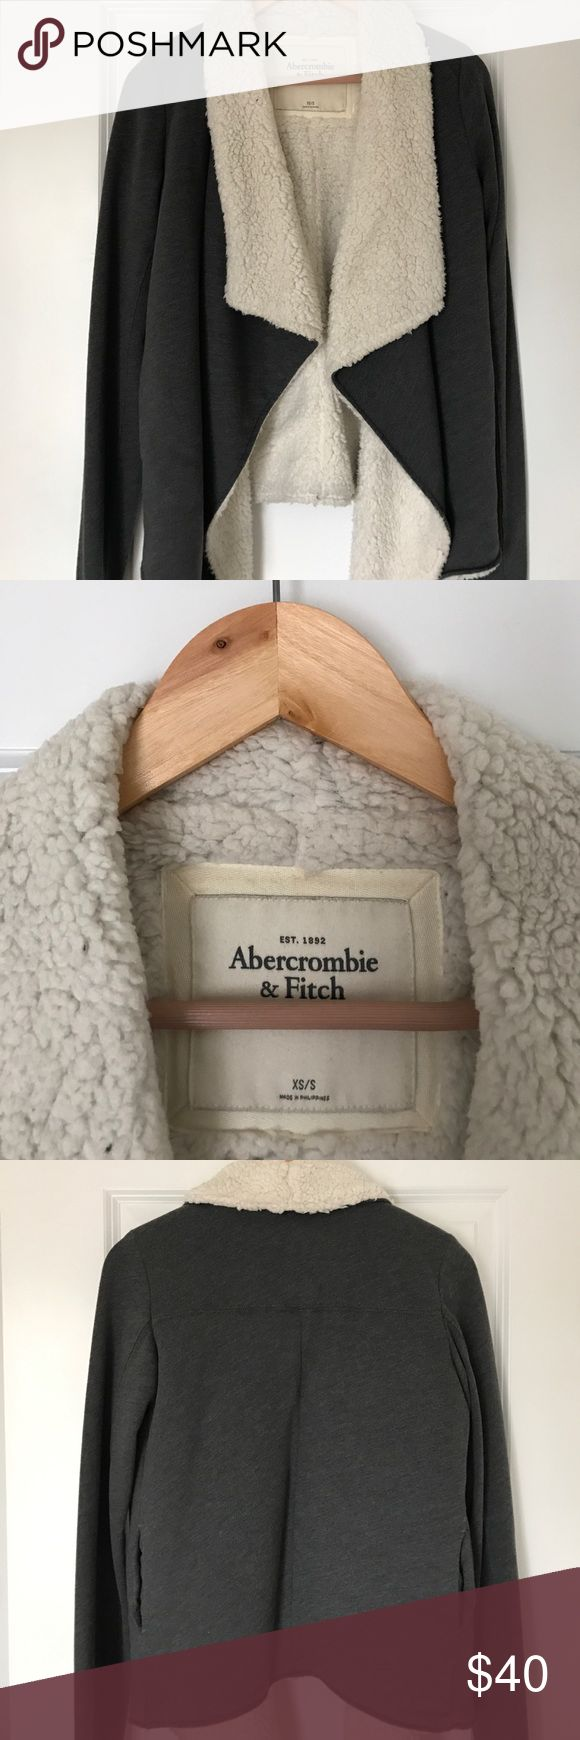 Abercrombie and Fitch Sherpa Fleece Jacket. Almost new Abercrombie and Fitch Sherpa Fleece Jacket. Super soft and warm. Side pockets. Drape front design. Women's XS/S. Abercrombie & Fitch Jackets & Coats